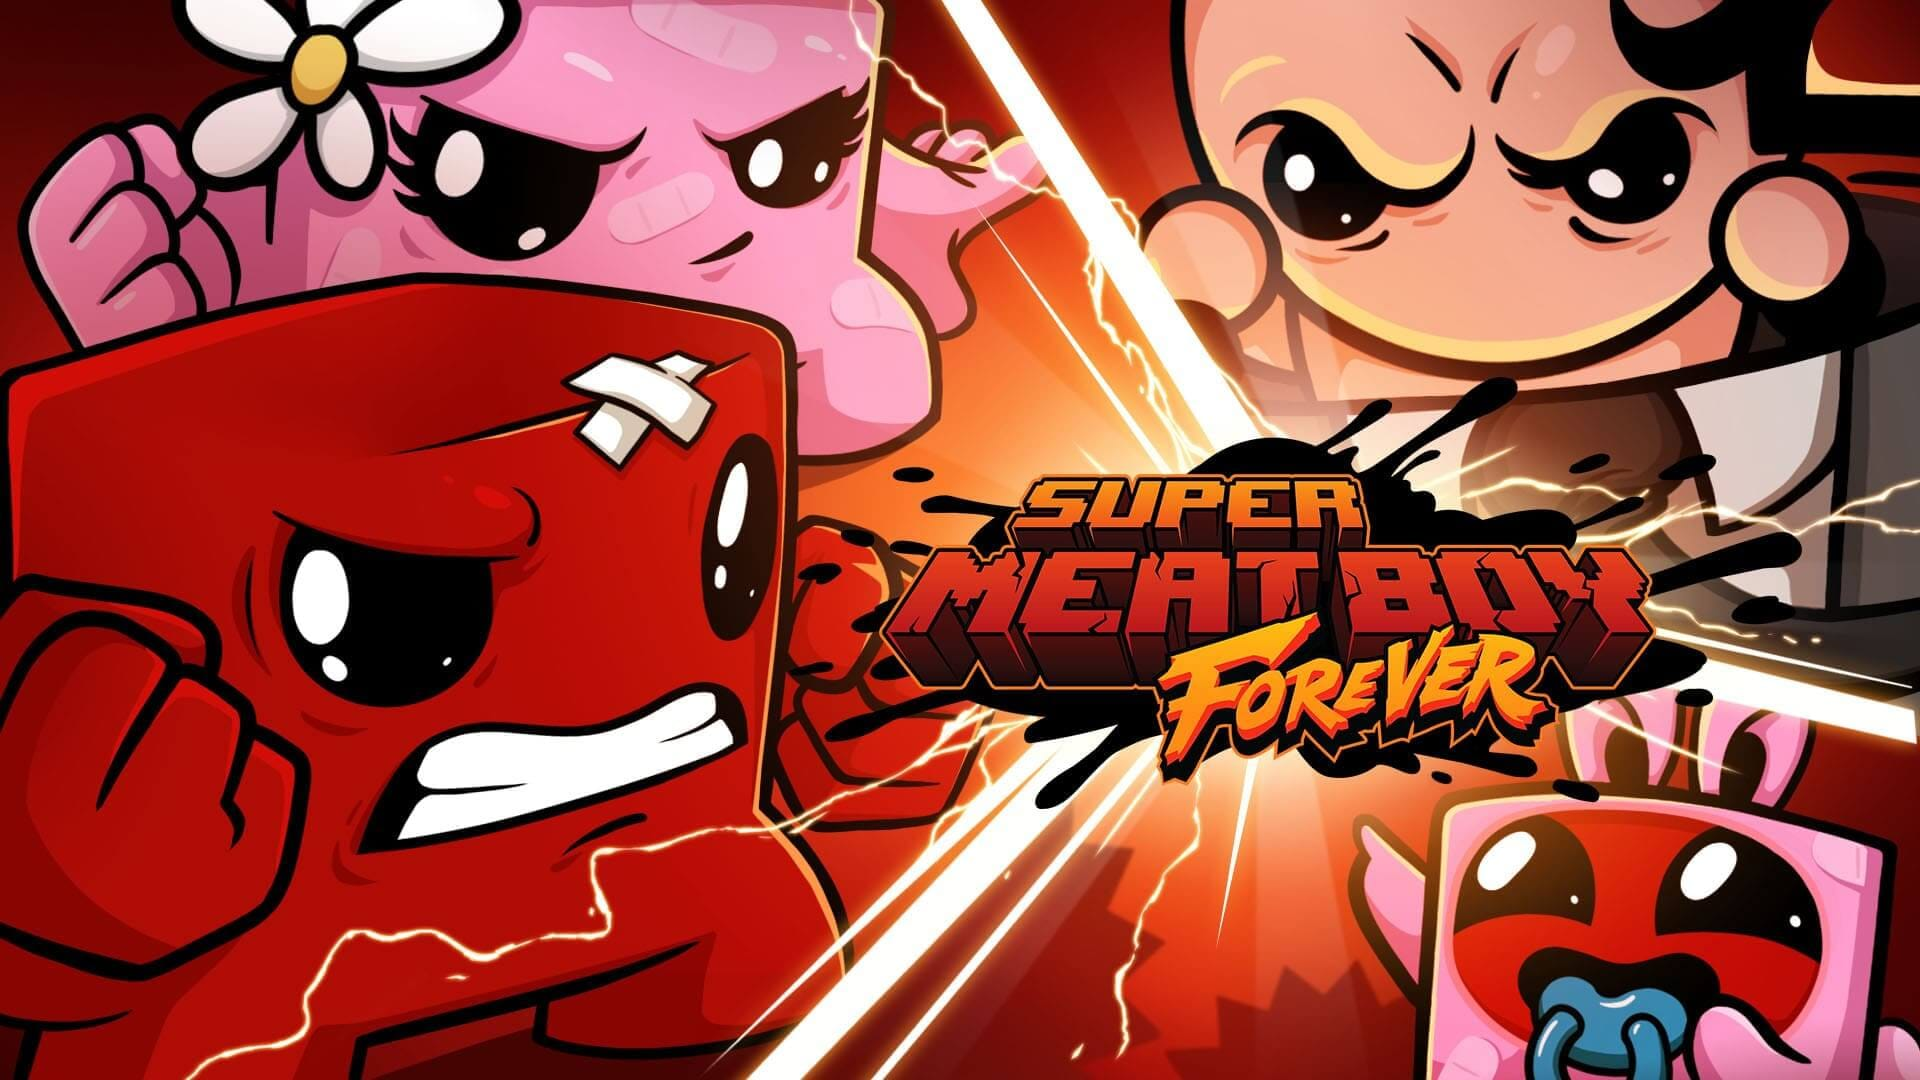 Super Meat Boy Forever: Table for Cheat Engine [UPD: 27.12.2020]